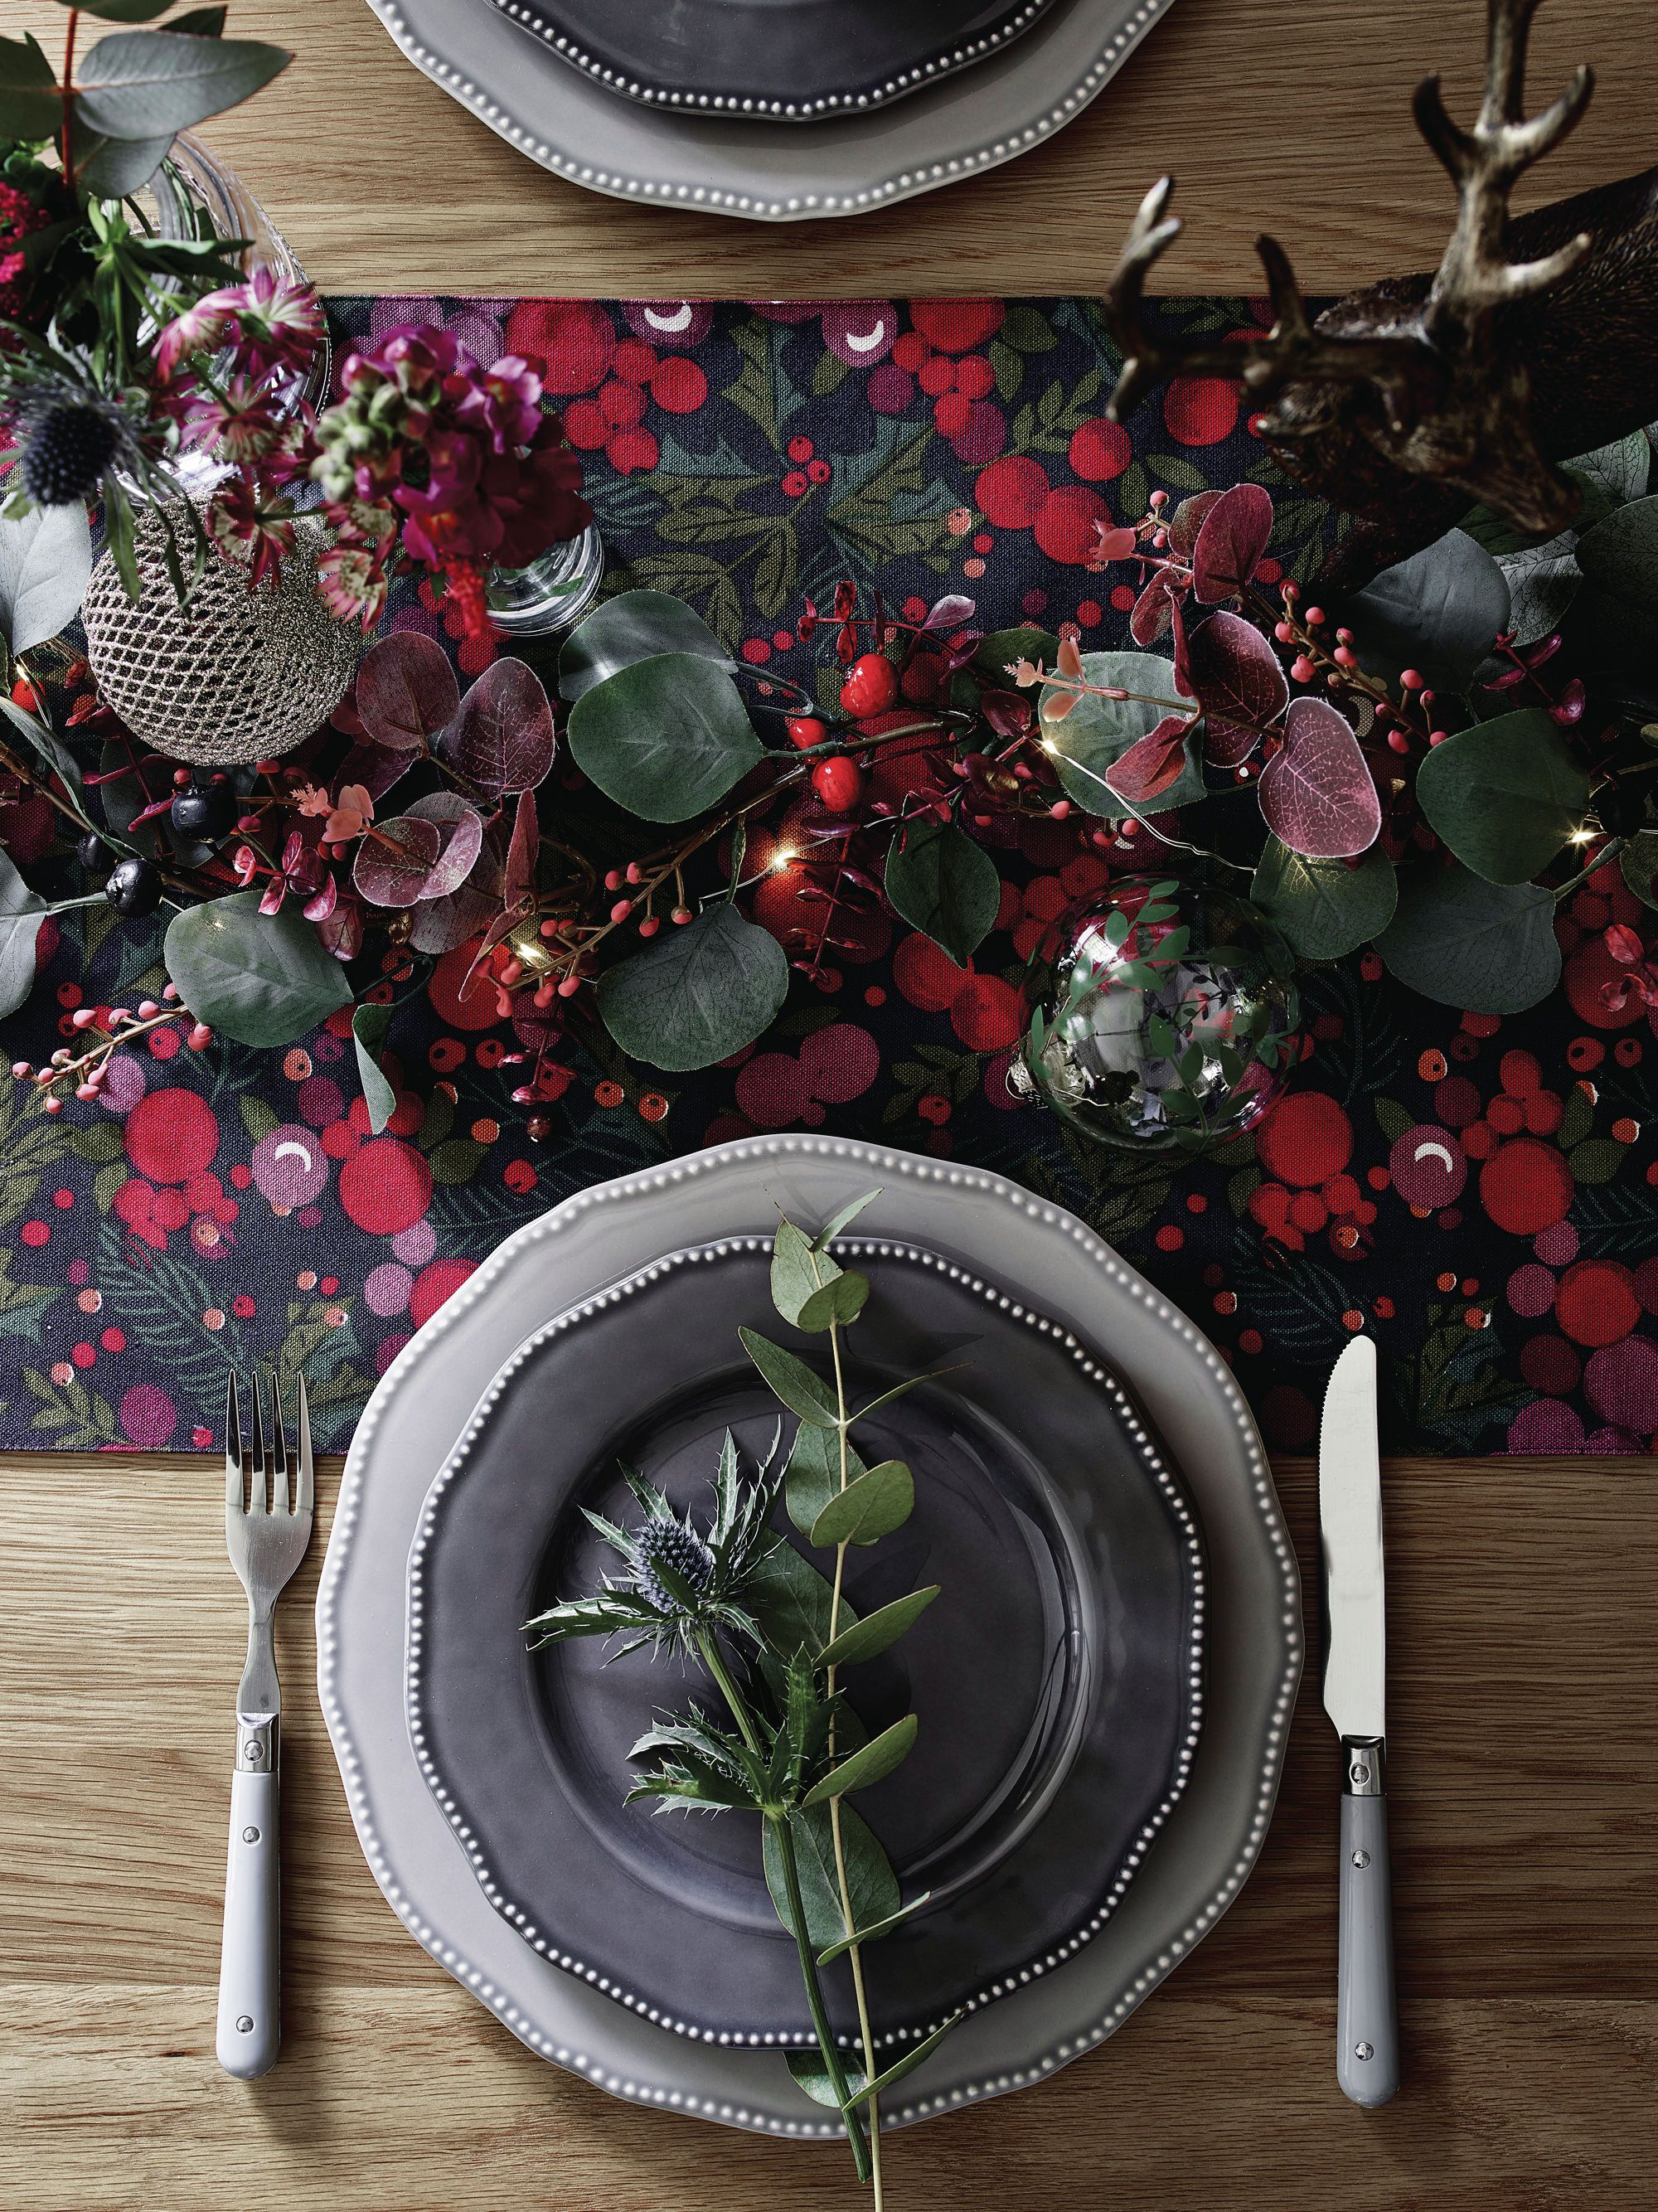 11 styling secrets to decorating the perfect Christmas table this year